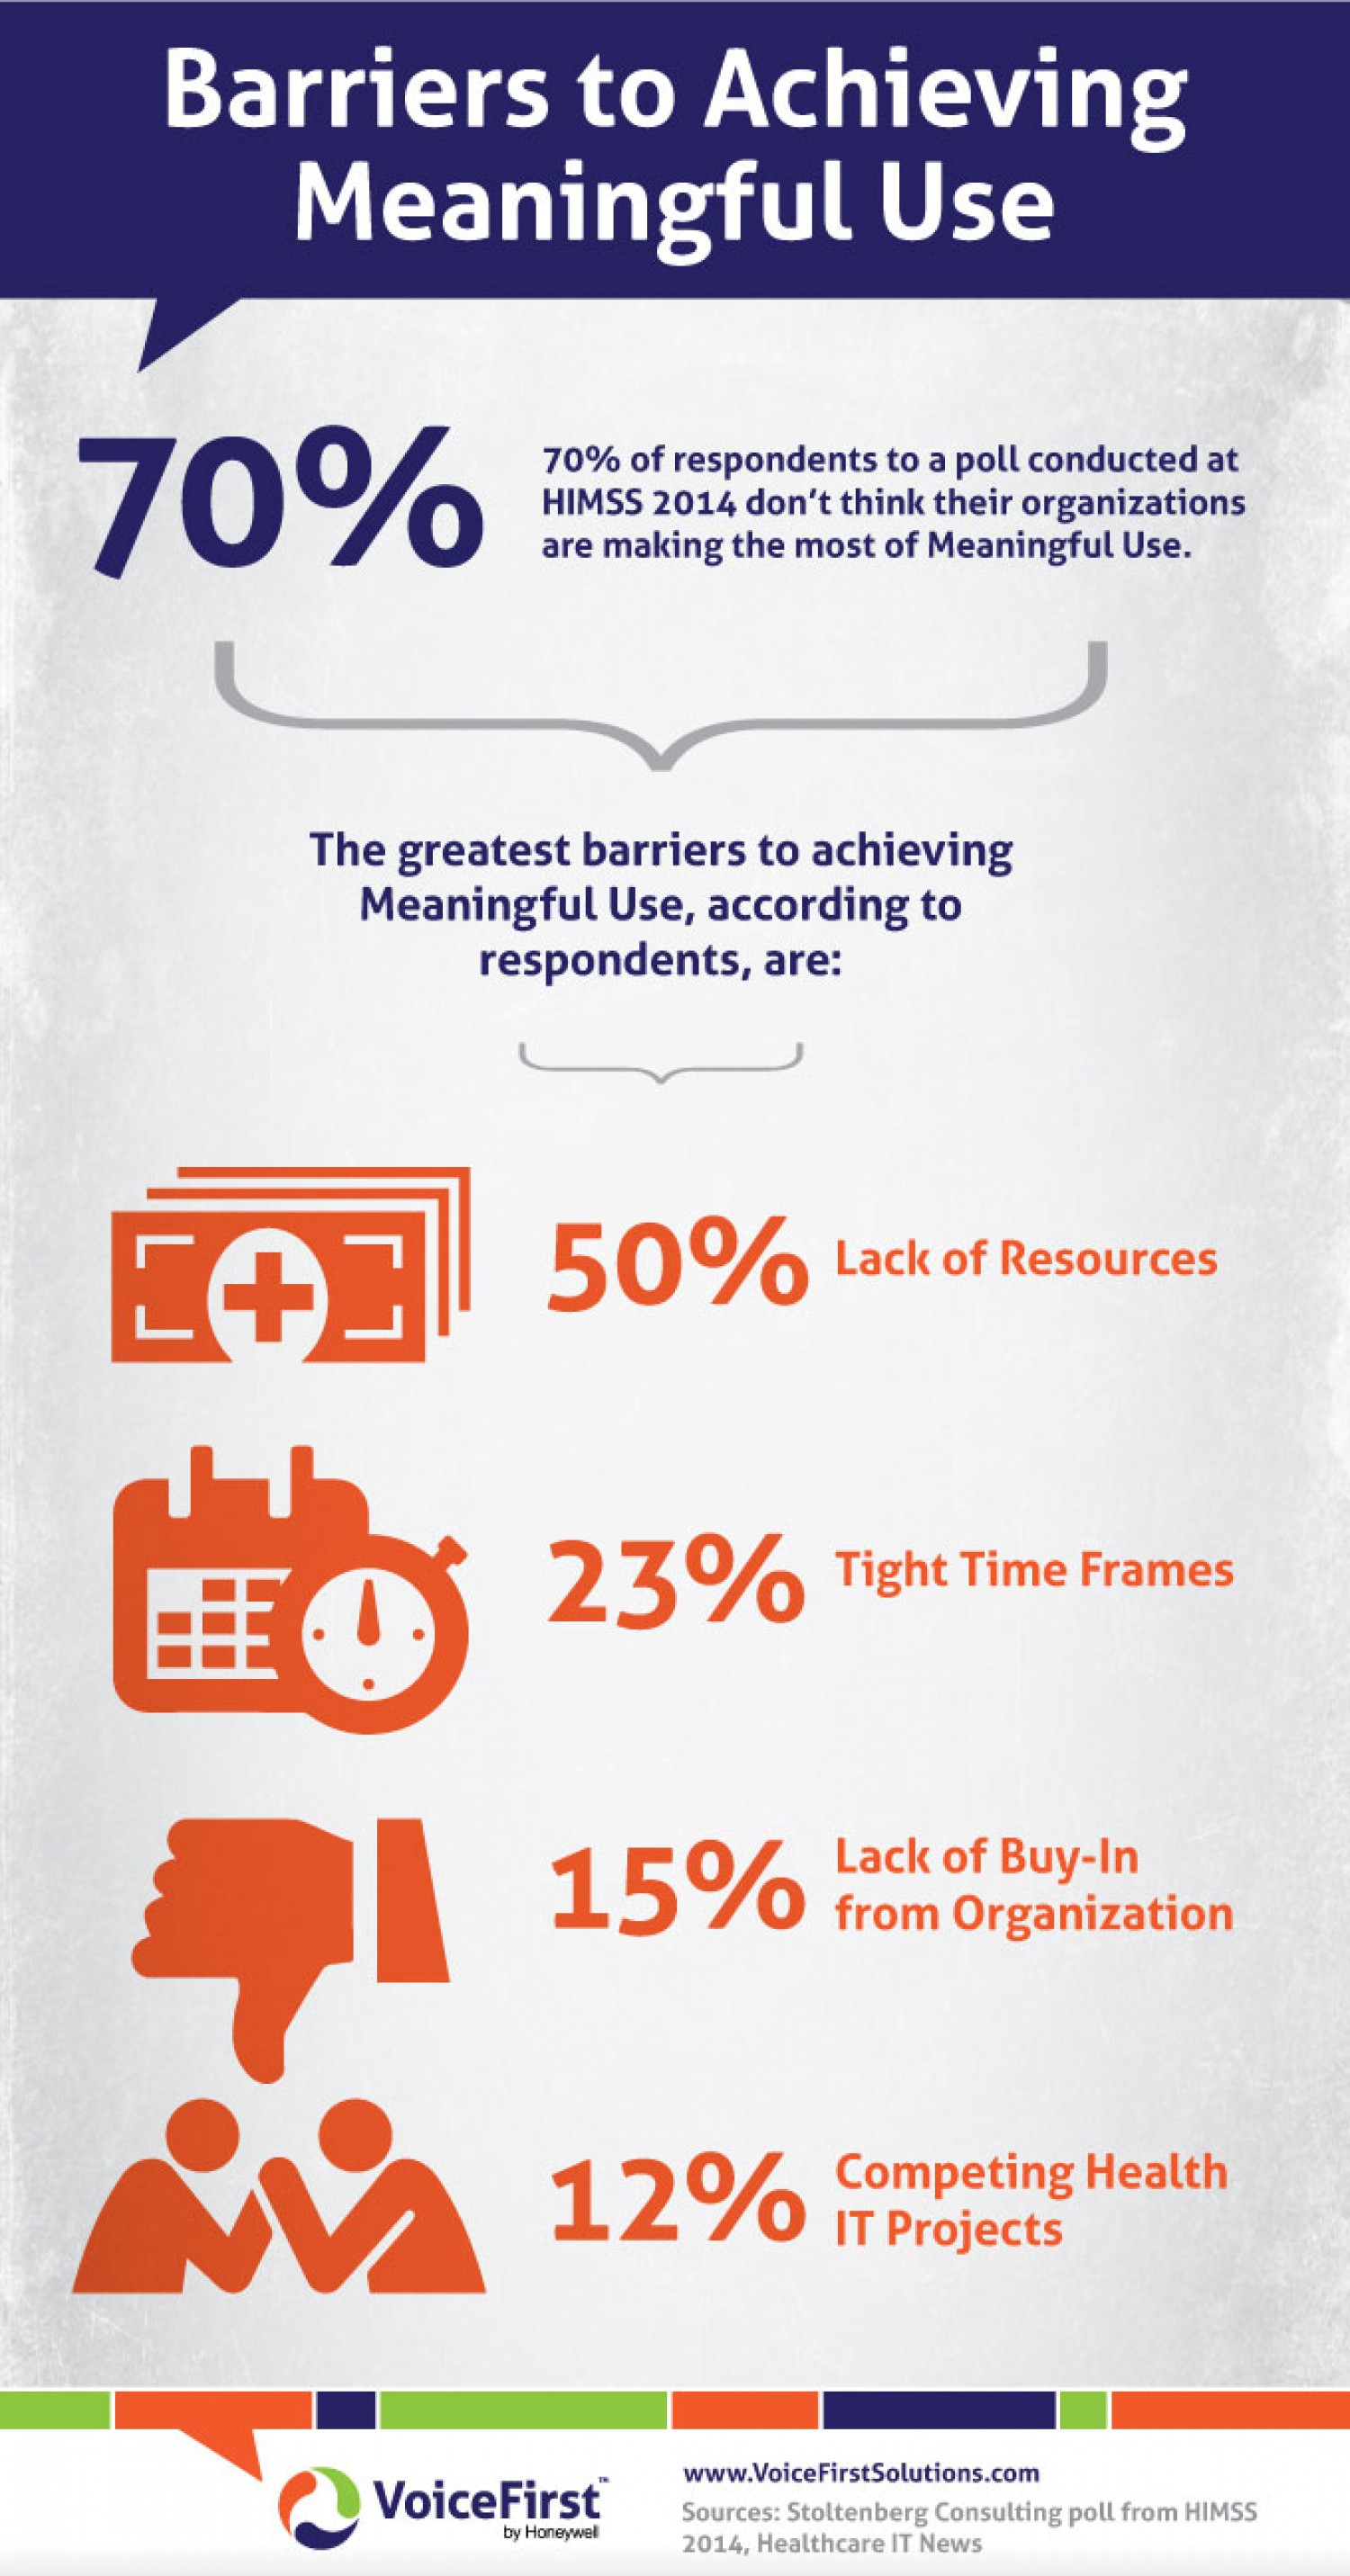 Barriers to Achieving Meaningful Use Infographic